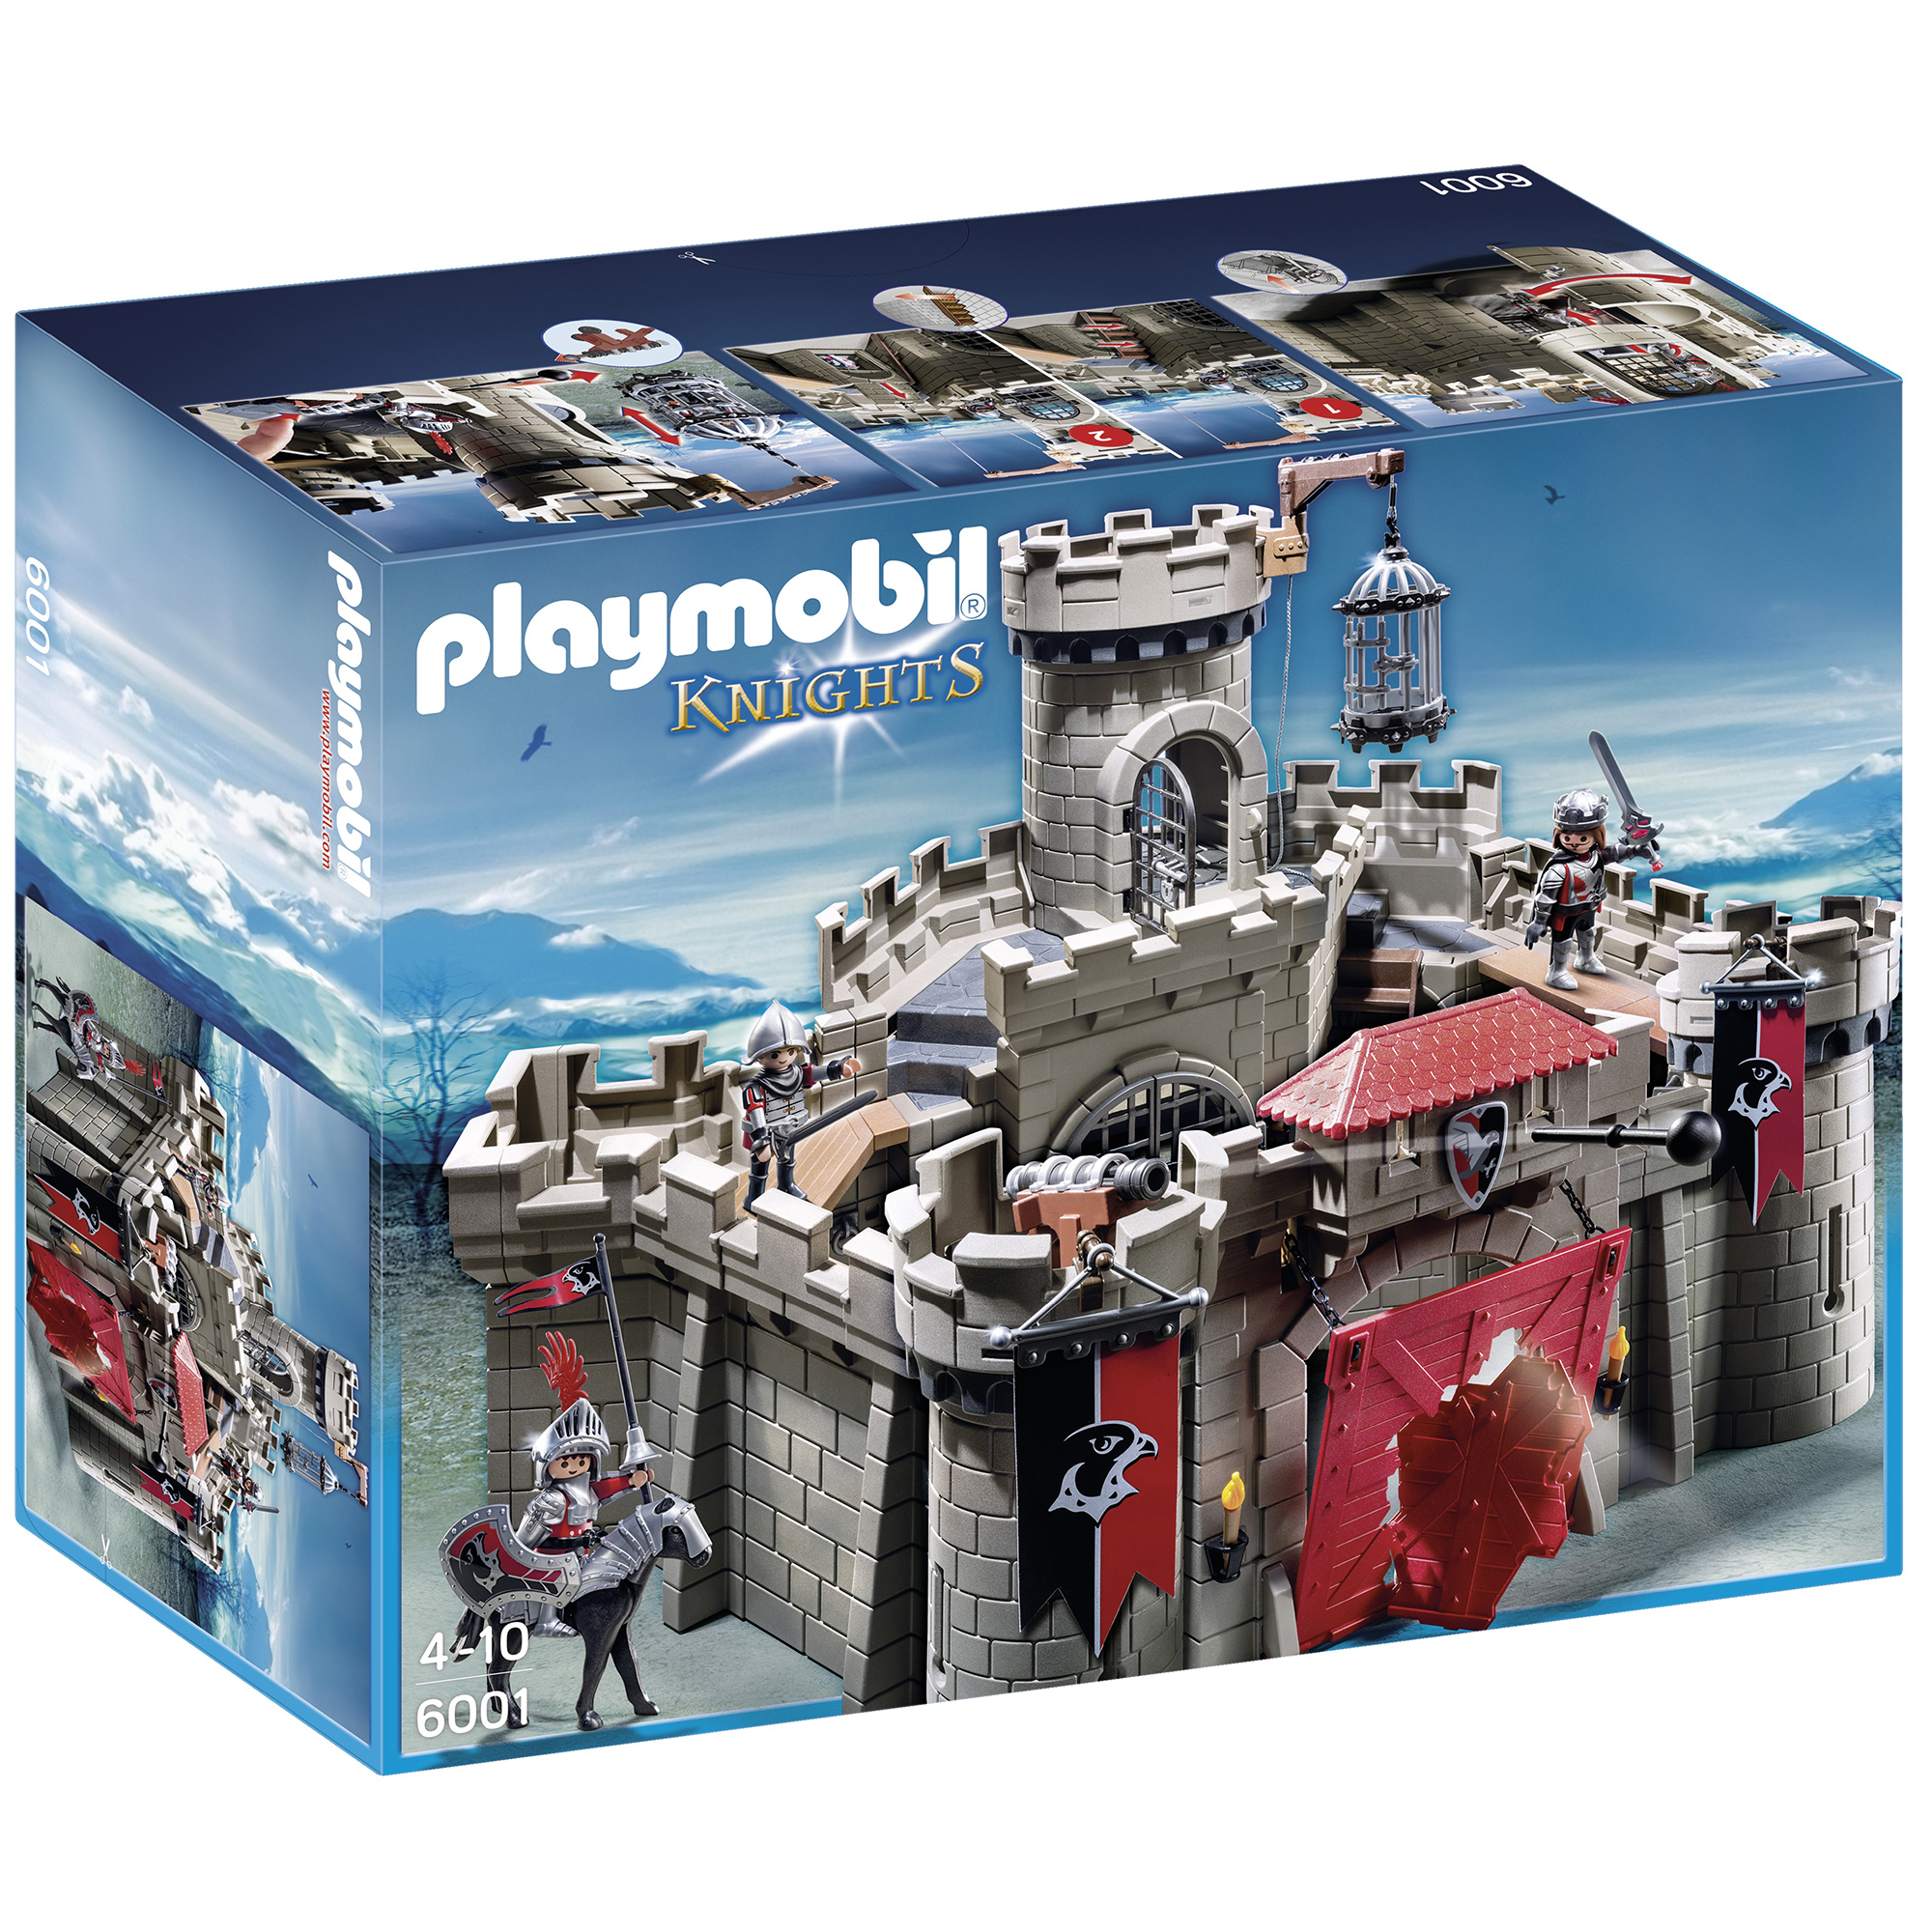 Playmobil Hawk Knight Castle 6001